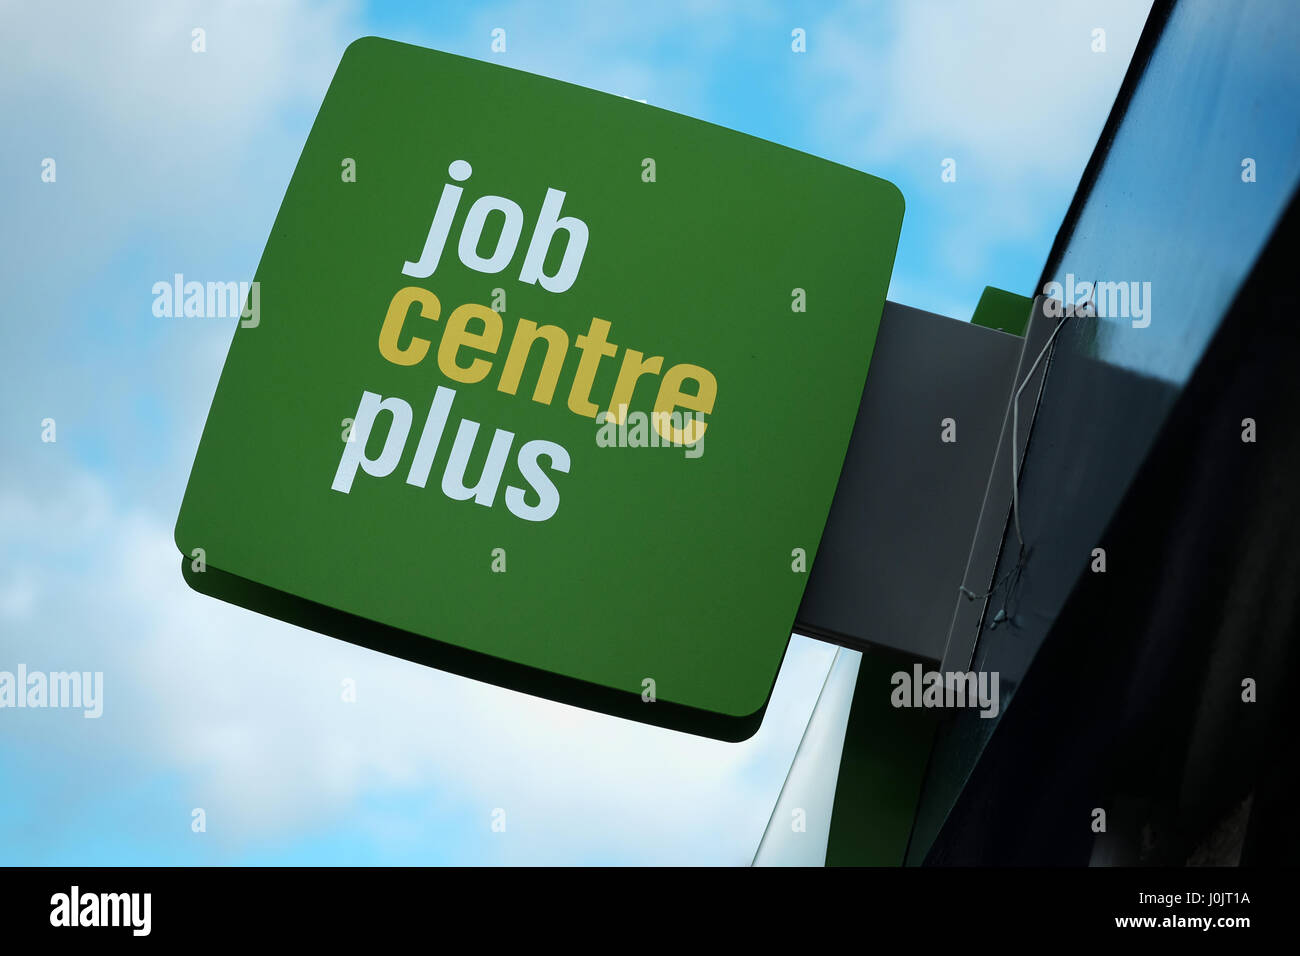 Job centre sign - Stock Image